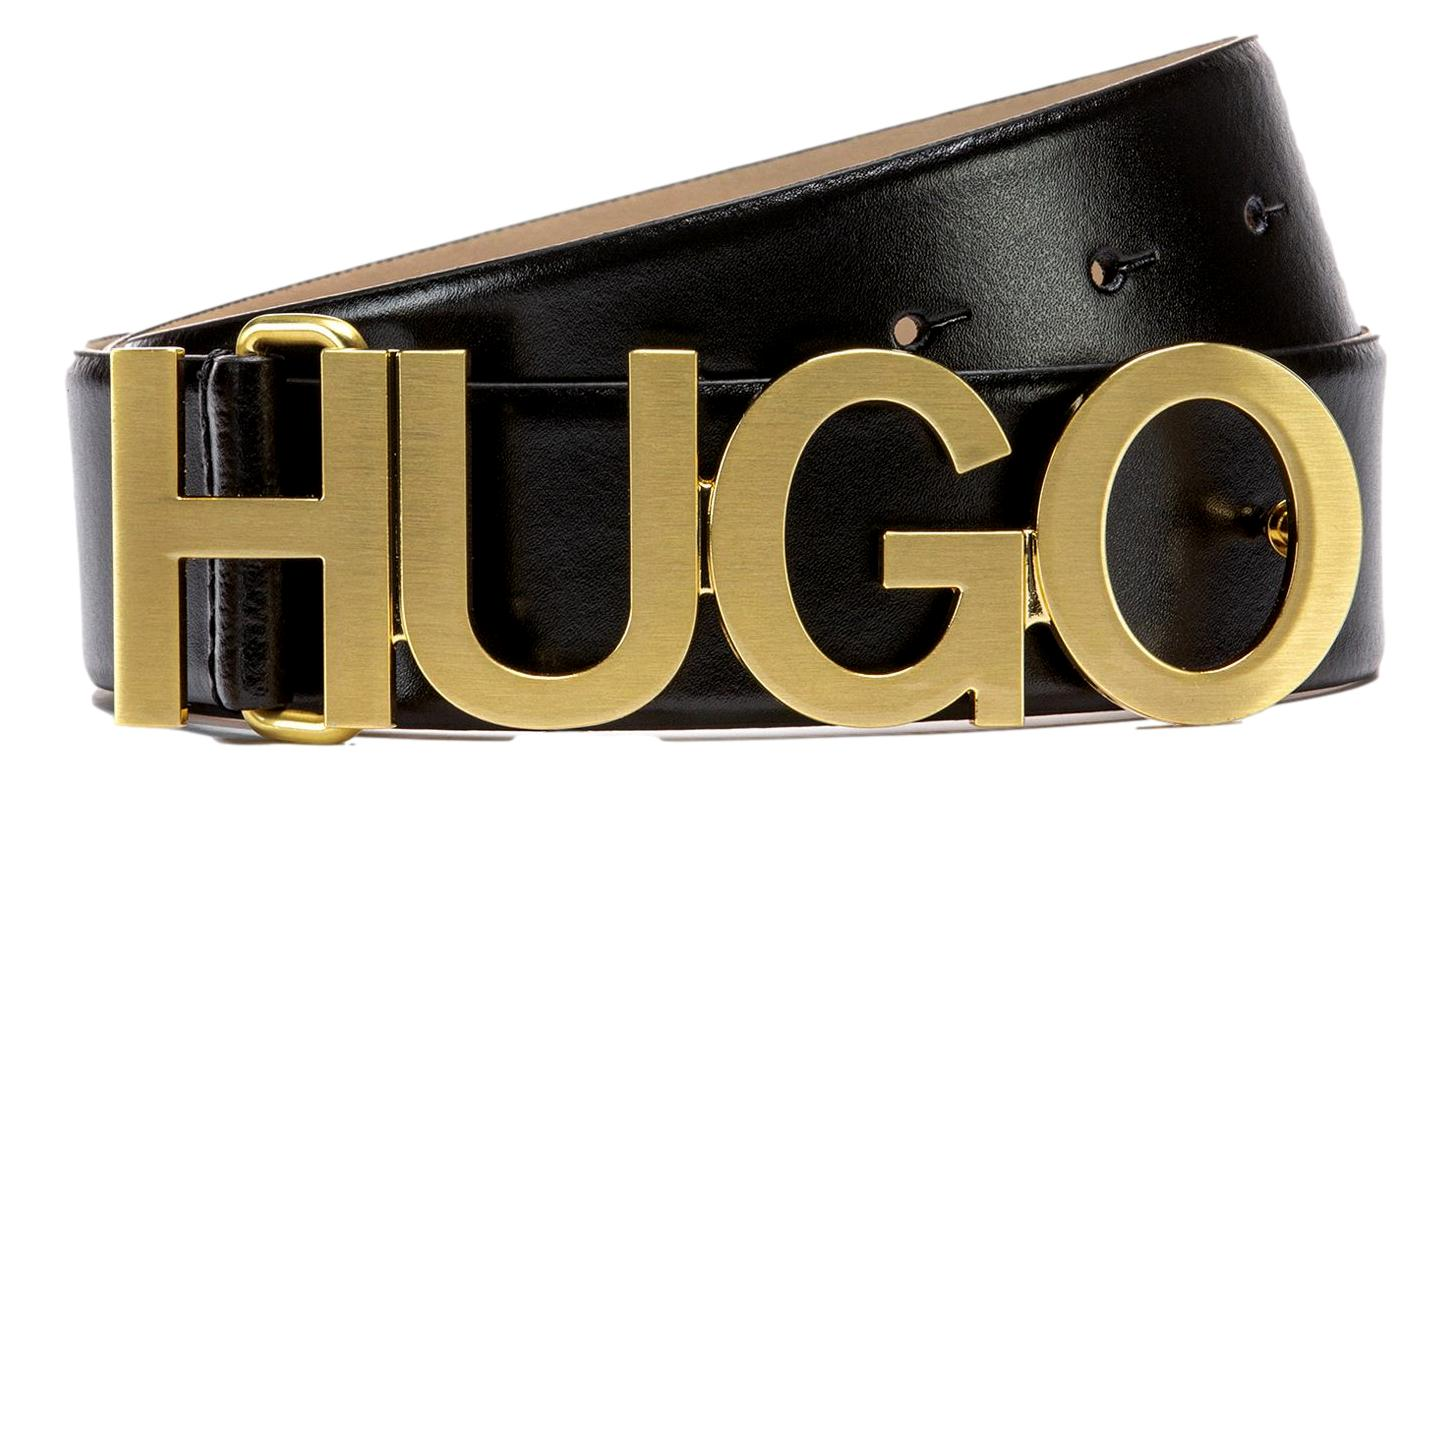 HUGO BOSS Cintura in pelle con logo color ORO Modello Zula Belt 4 cmZL 50391327